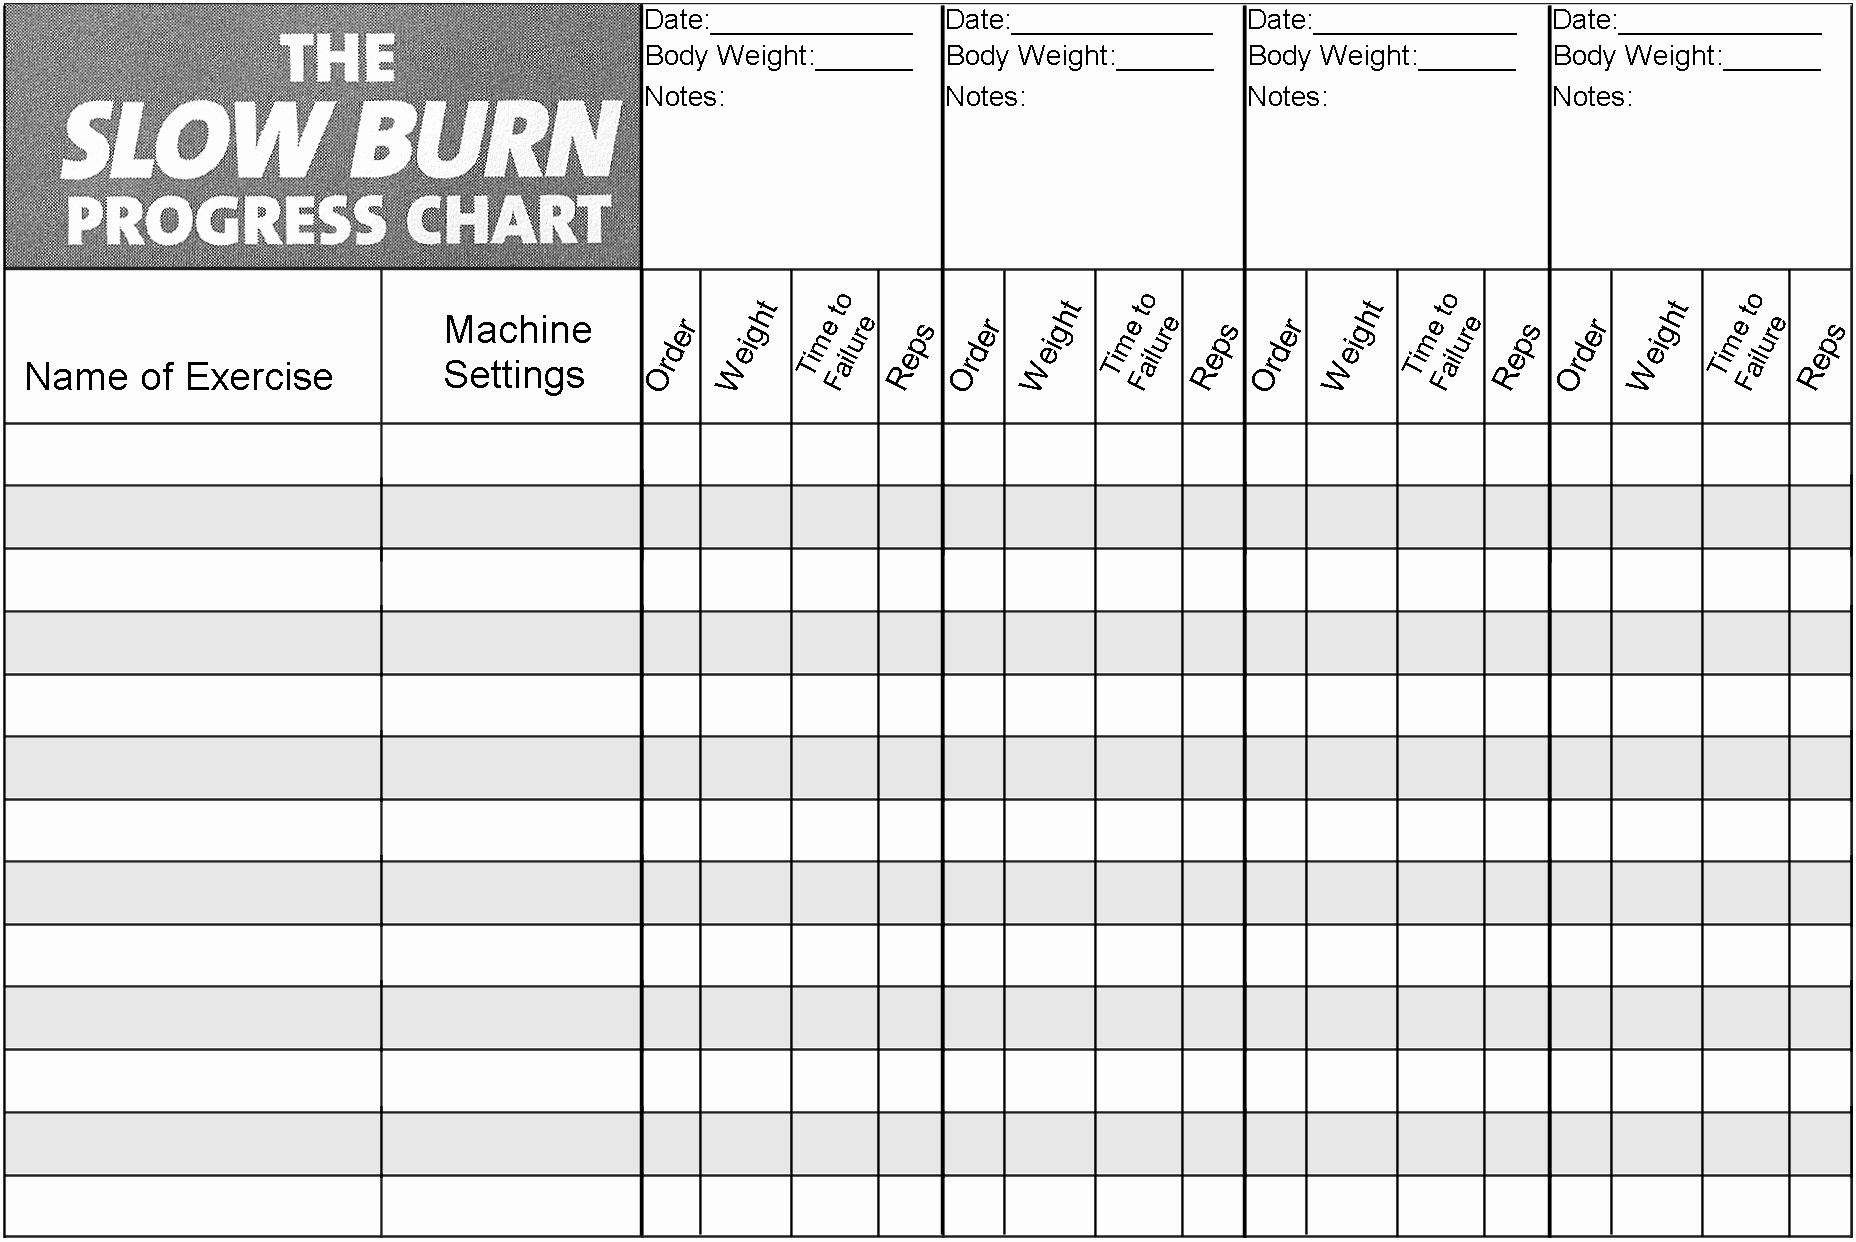 Work Out Chart Beautiful Slow Burn Workout Progress Chart